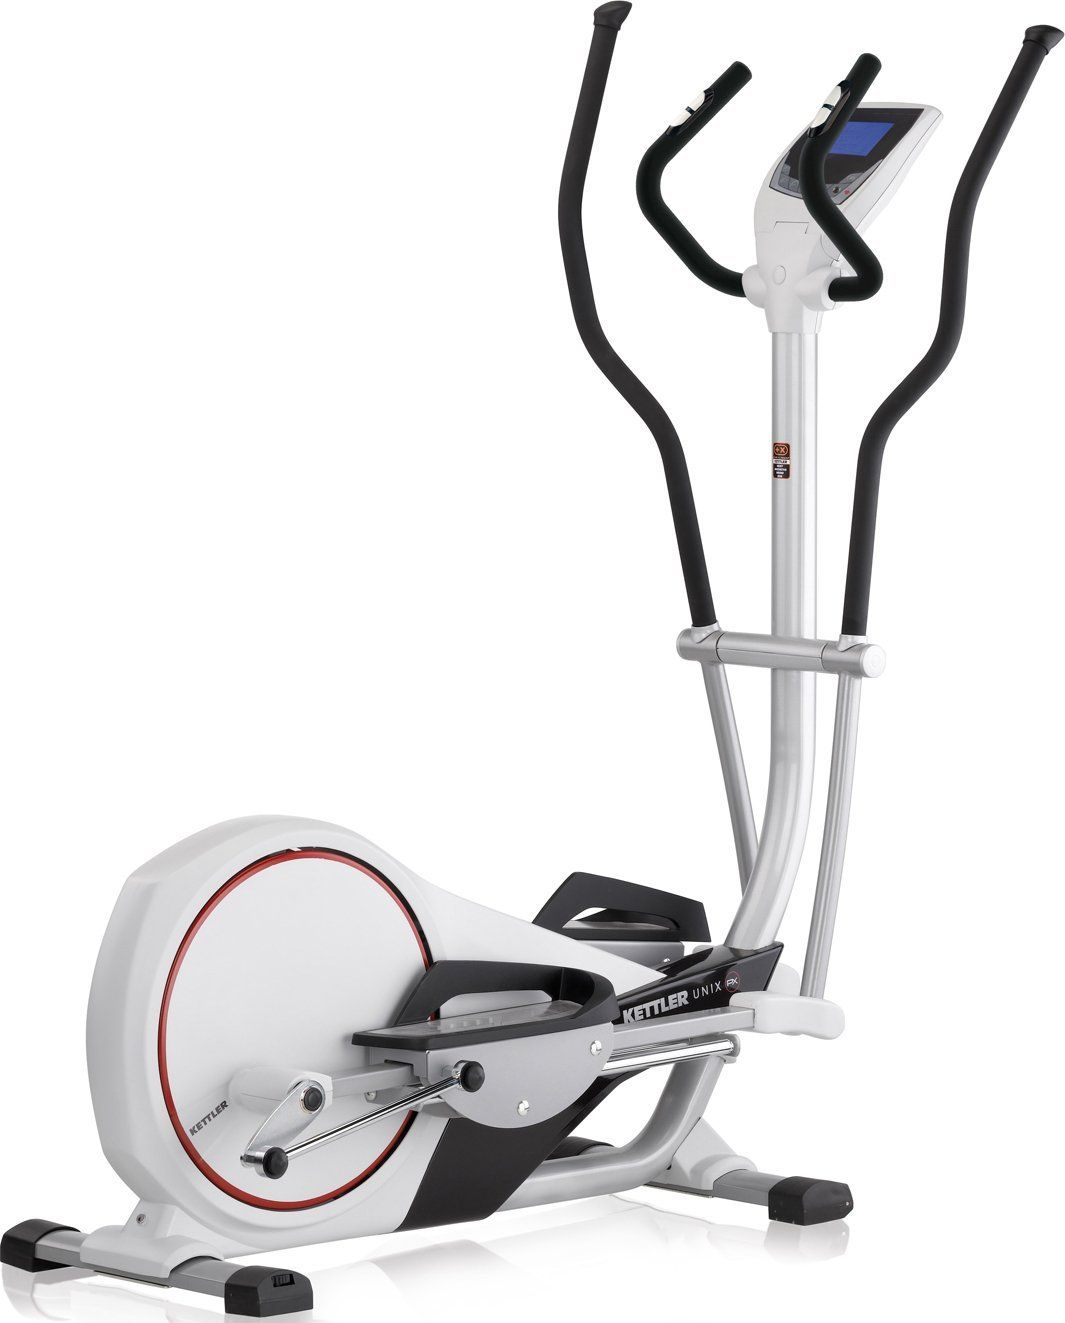 Kettler Fitness Kettler Home Exercise Fitness Equipment Unix Px Elliptical